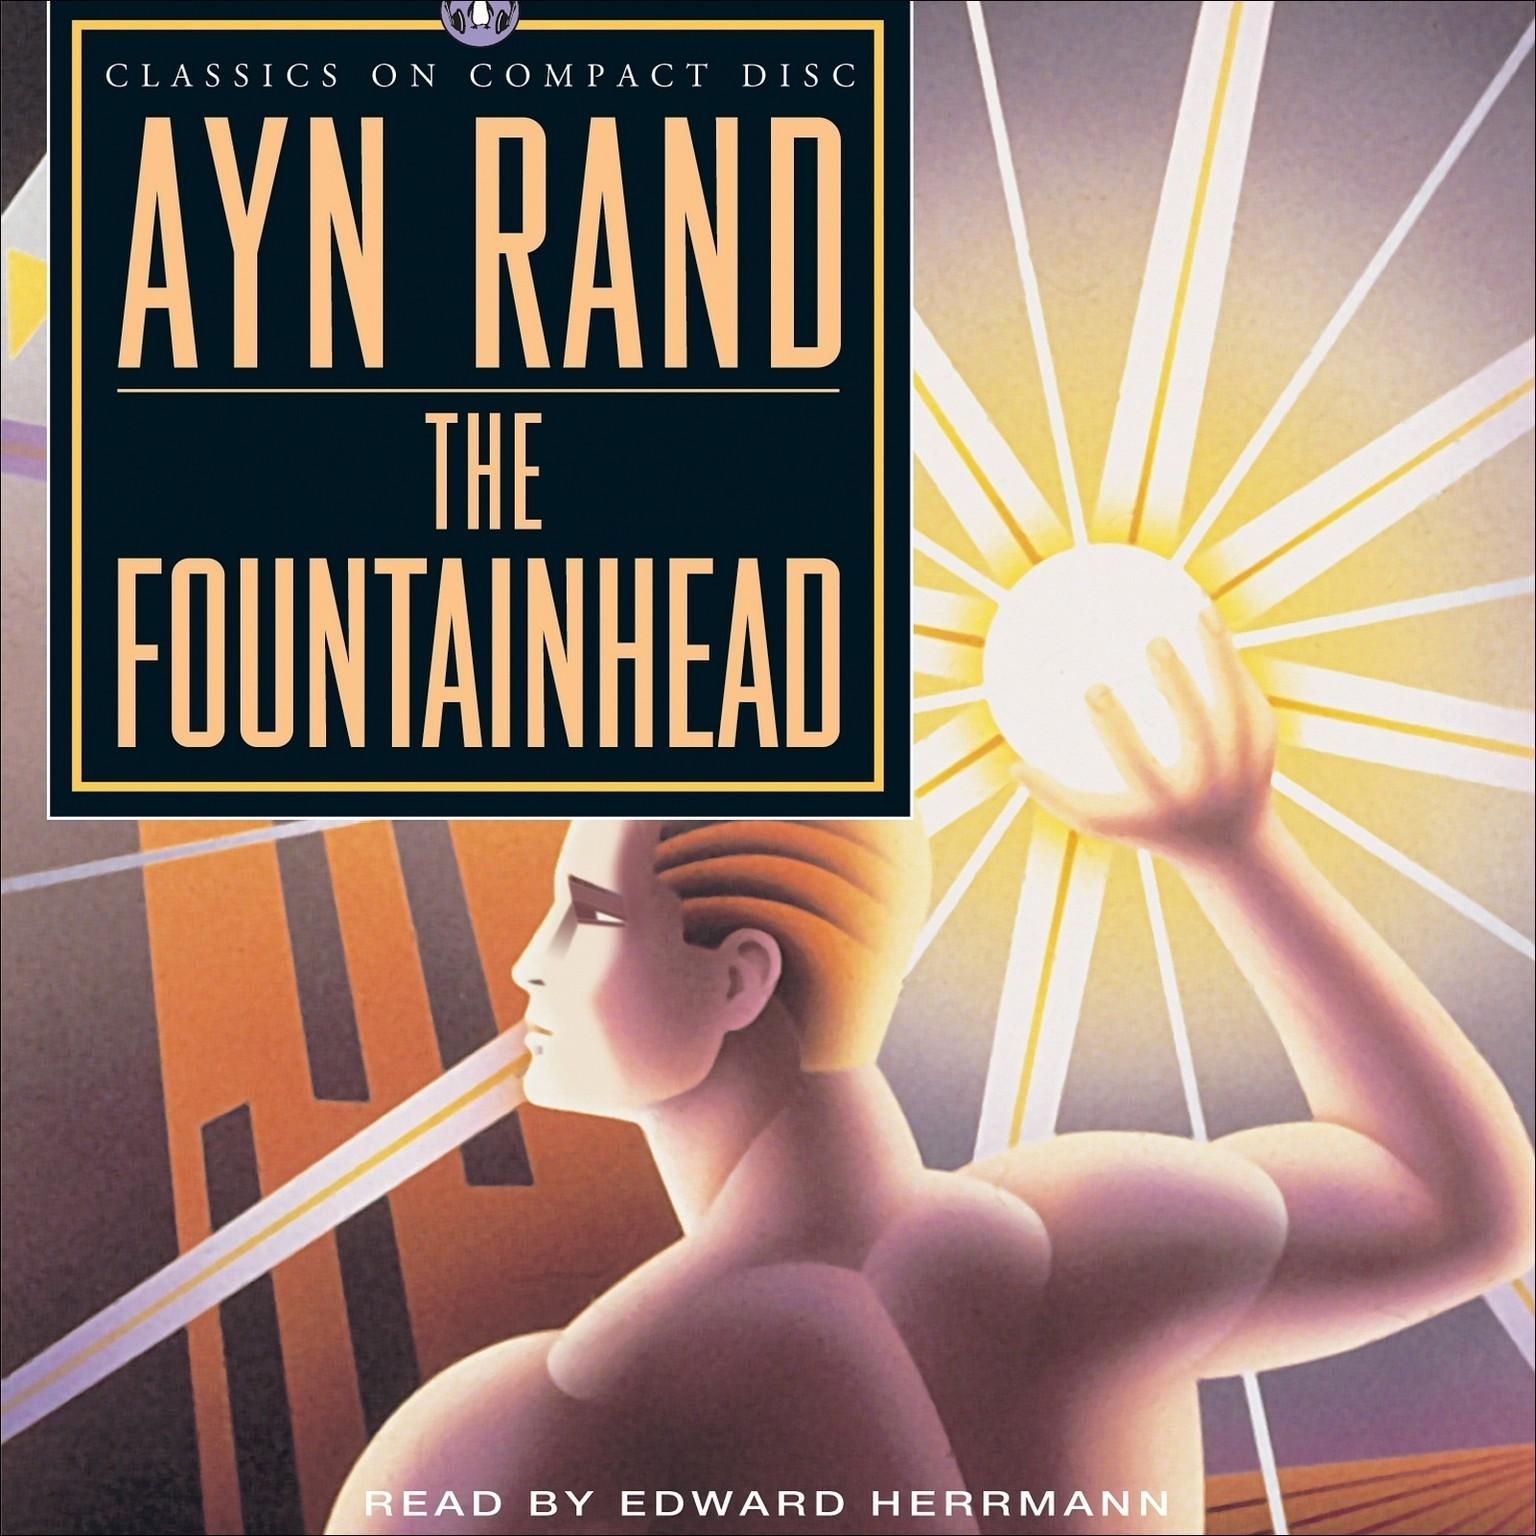 Download The Fountainhead (Abridged) Audiobookayn Rand For For Atlas Shrugged Cover Art (View 14 of 20)